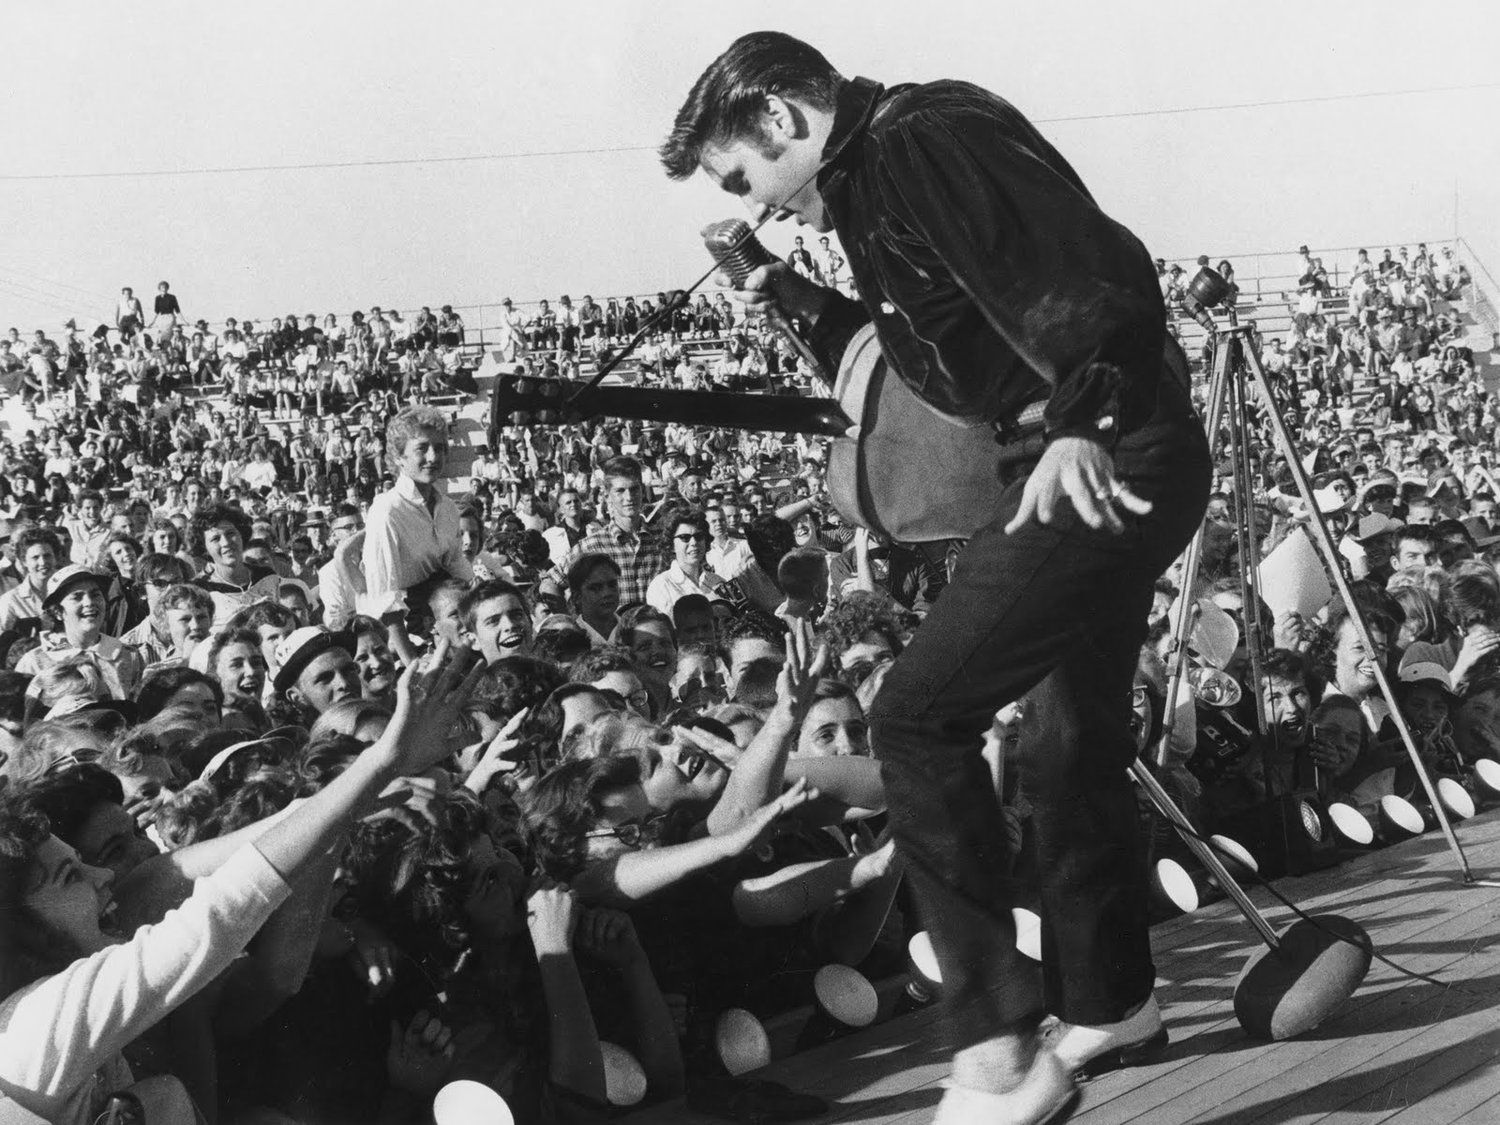 Rock & roll adapted the script of Pentecostalism